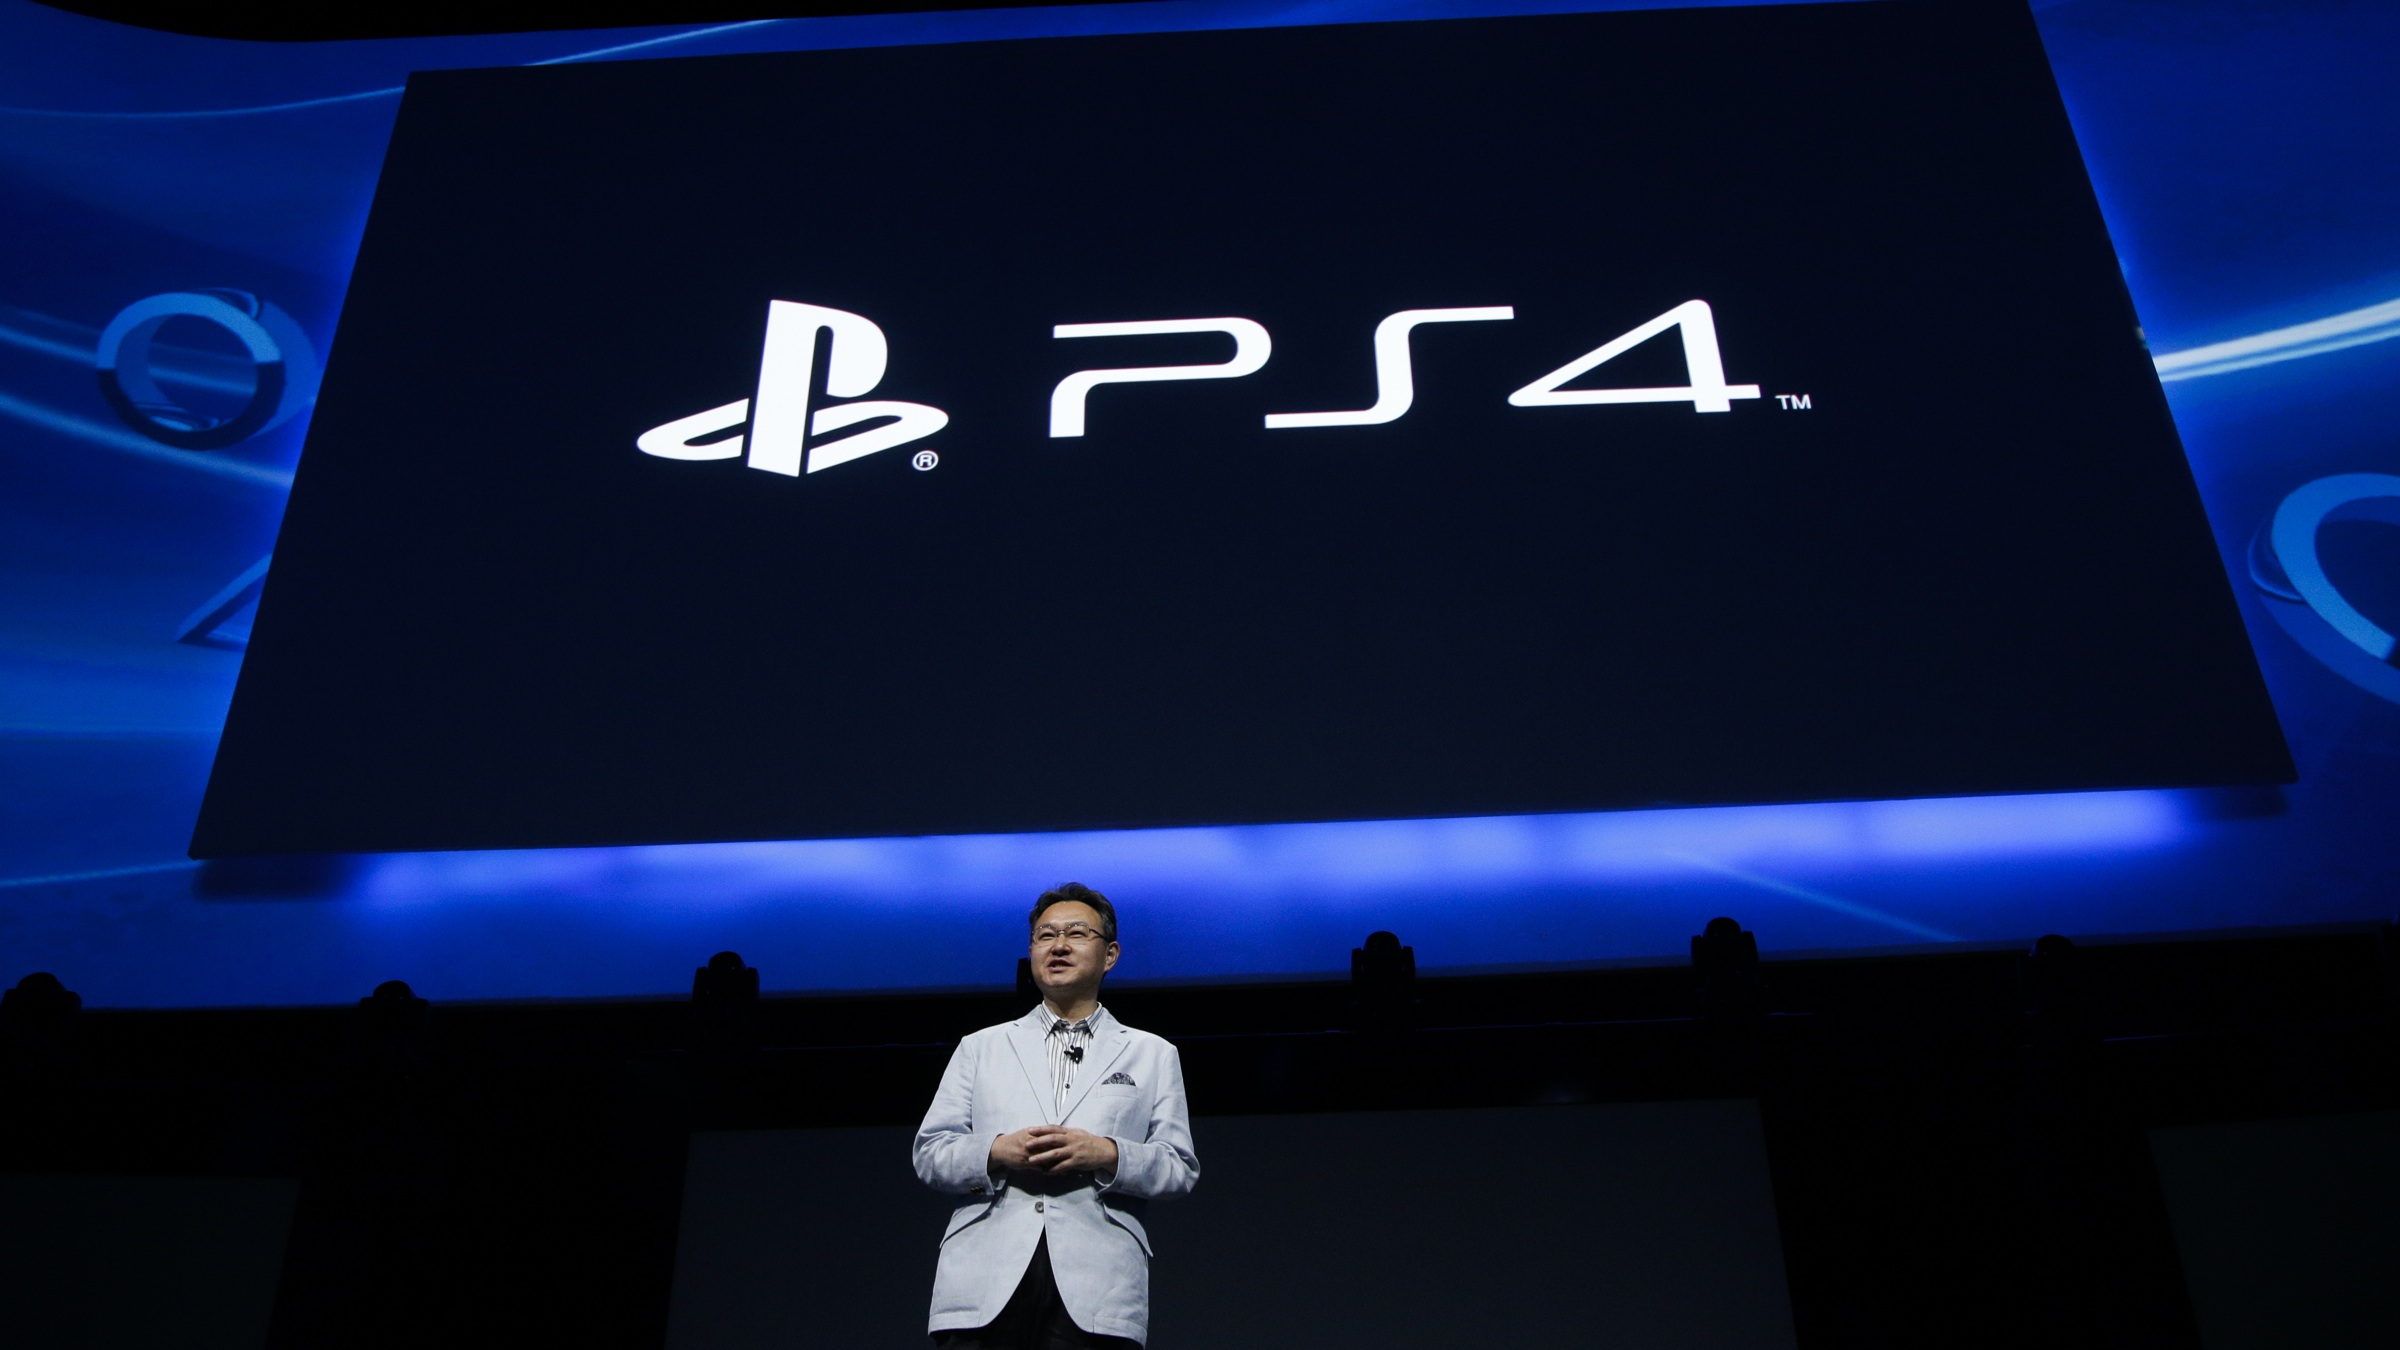 Shu Yoshida, president of Sony's Worldwide Studios for Sony Computer Entertainment Inc., addresses the media at the Sony PlayStation E3 media briefing in Los Angeles, Monday, June 10, 2013. Sony is giving gamers their first look at the PlayStation 4 and it's a rectangular black box, just like all the previous PlayStations. (AP Photo/Jae C. Hong)